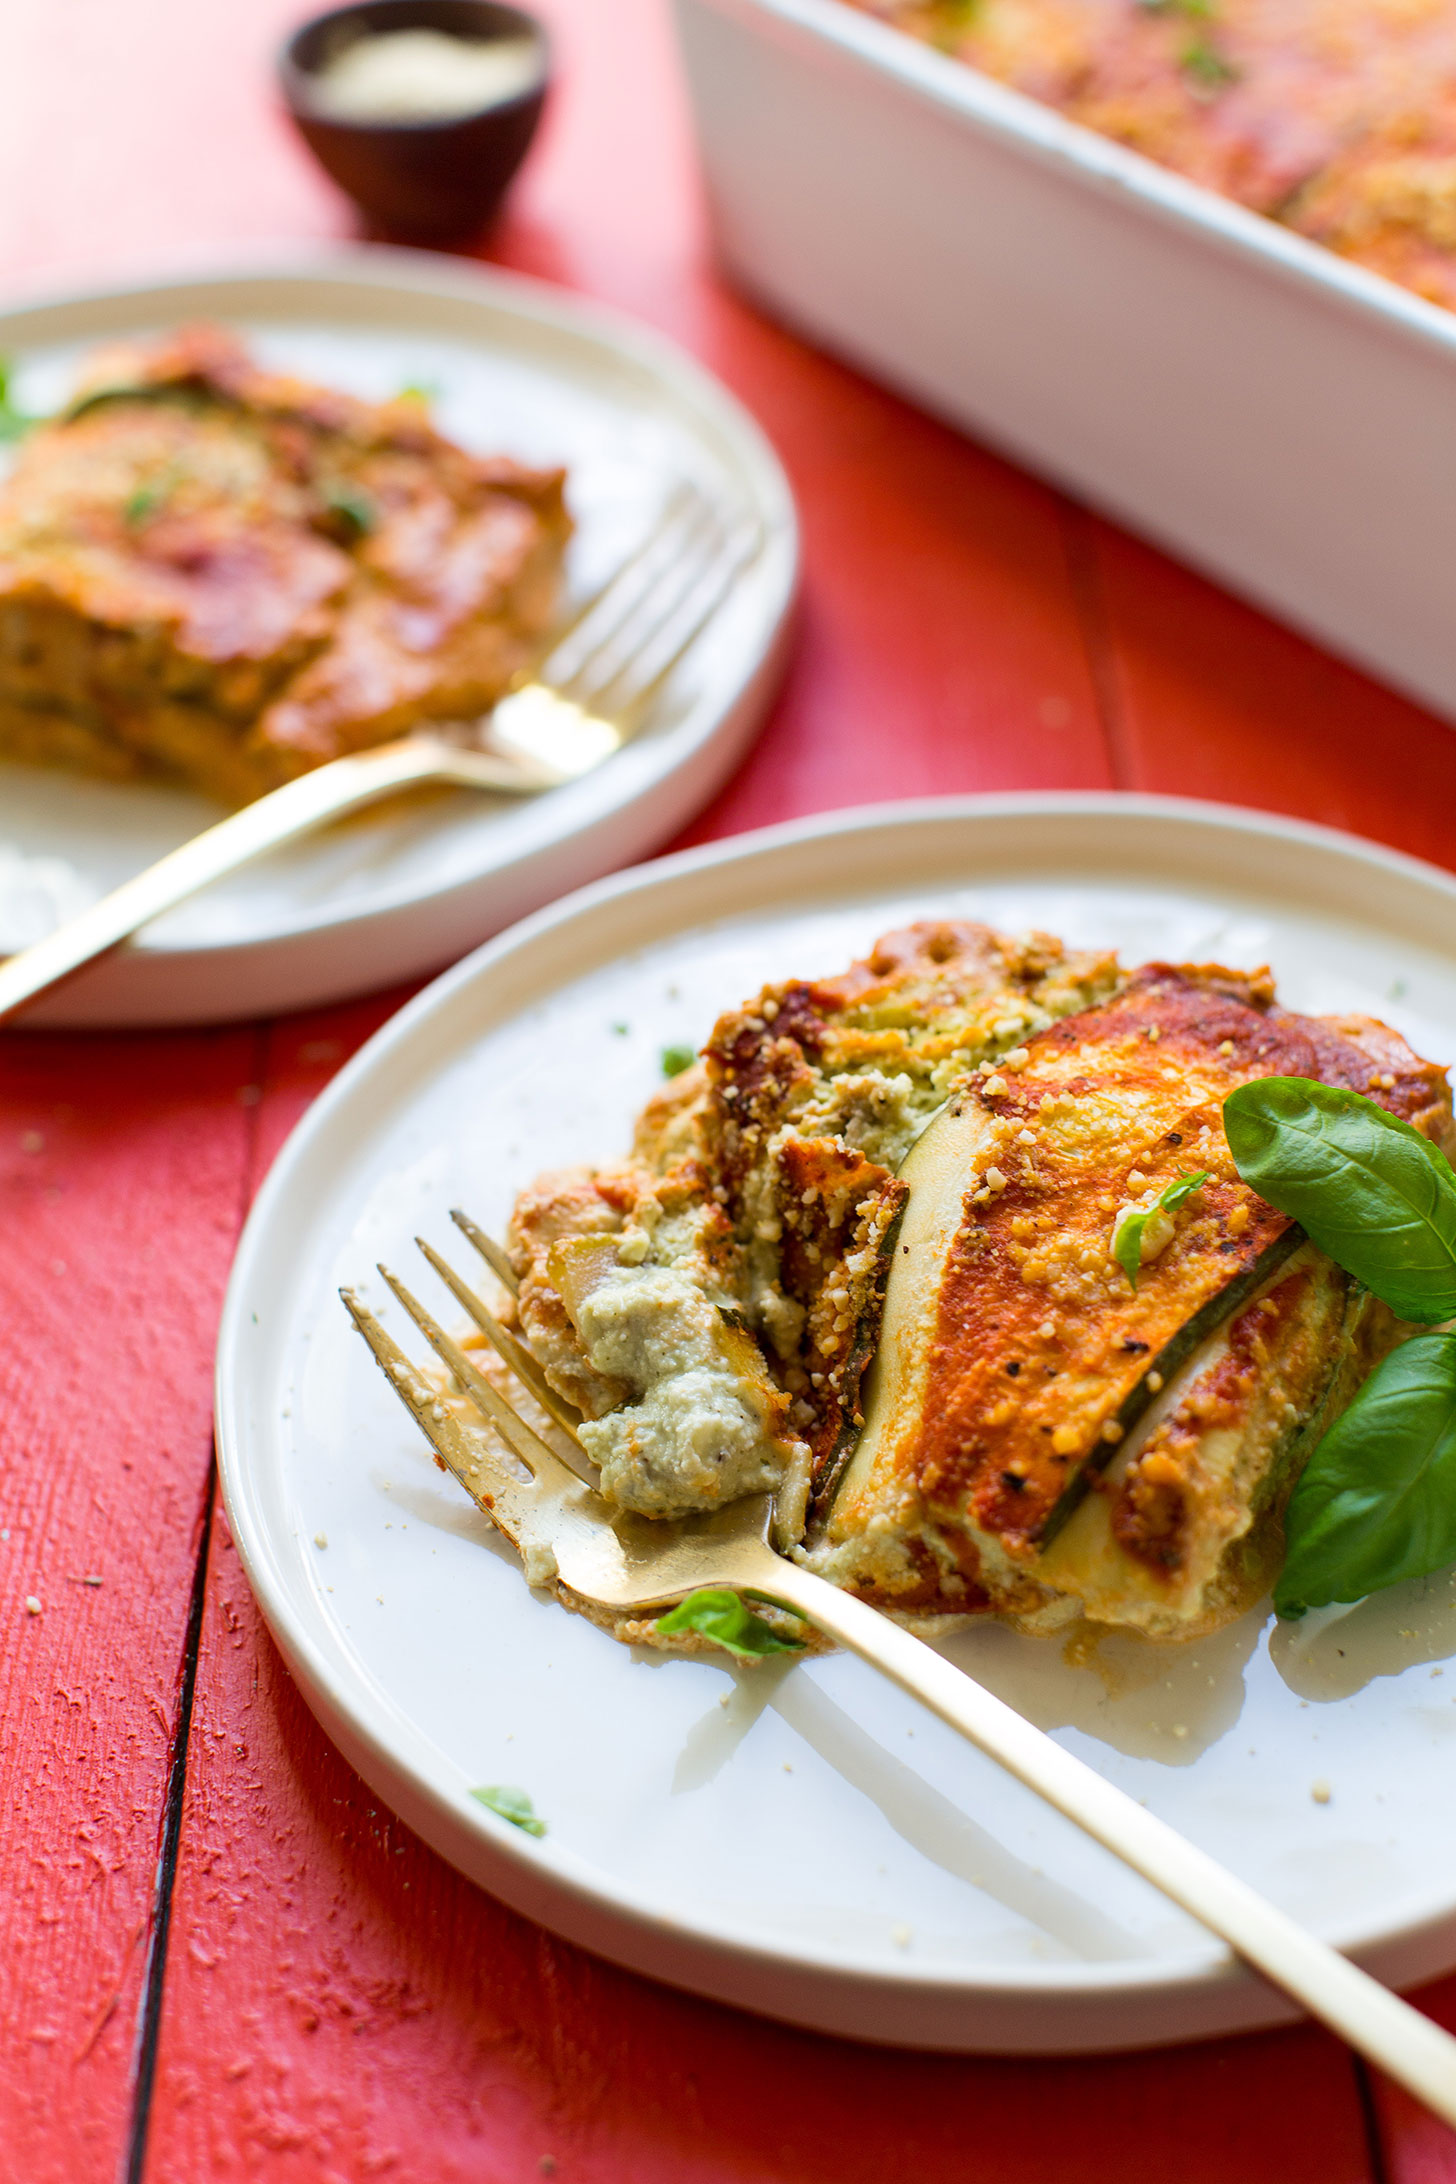 AMAZING Vegan Glutenfree Zucchini Lasagna With DIY Nut Ricotta 8 Ingredients Protein Rich